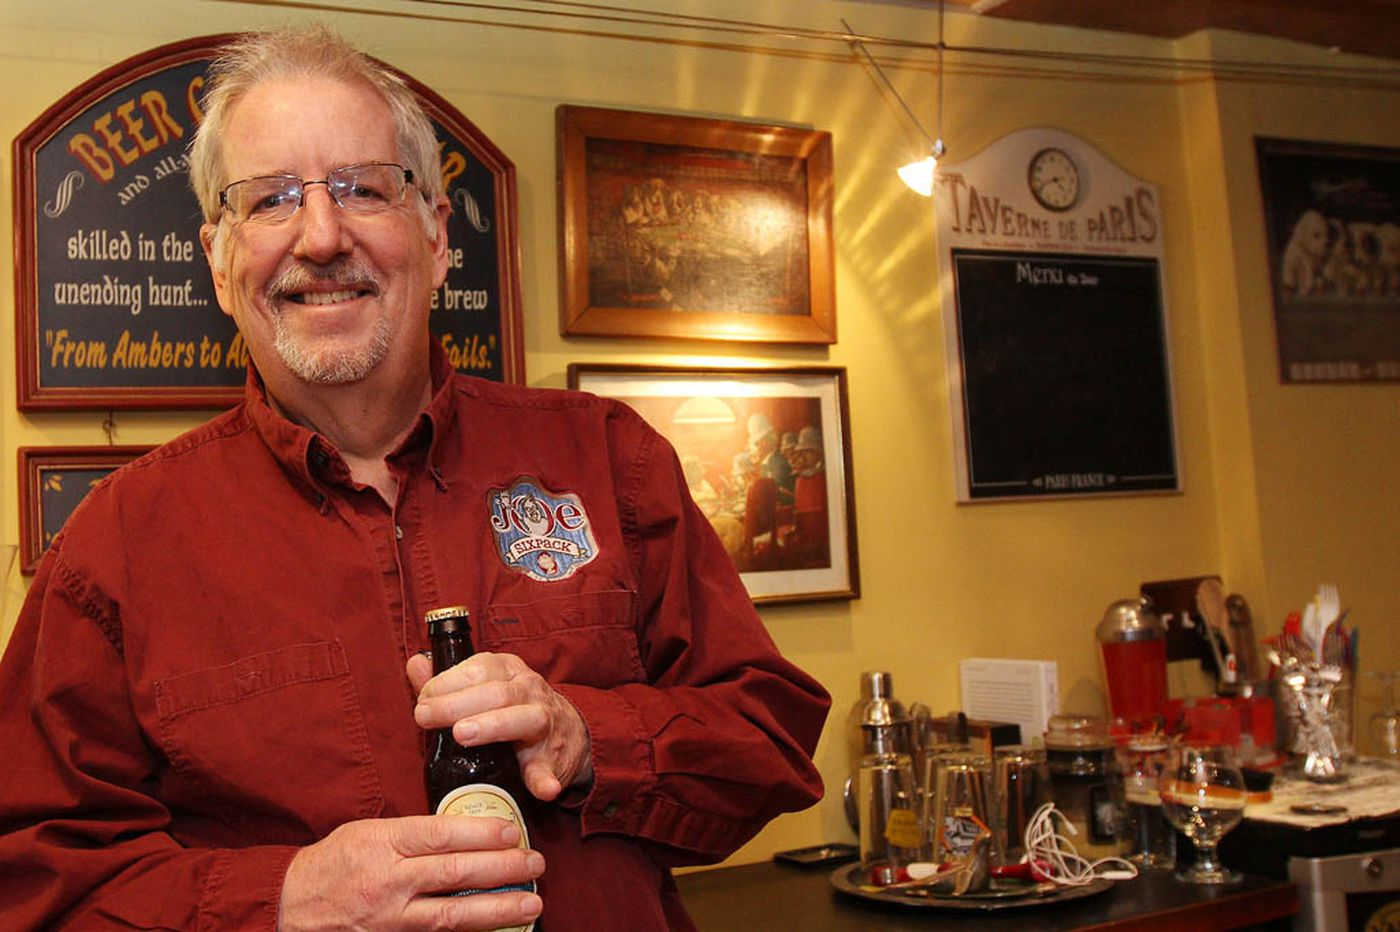 It's official (and surprising): Joe Sixpack's 2014 Beer of the Year